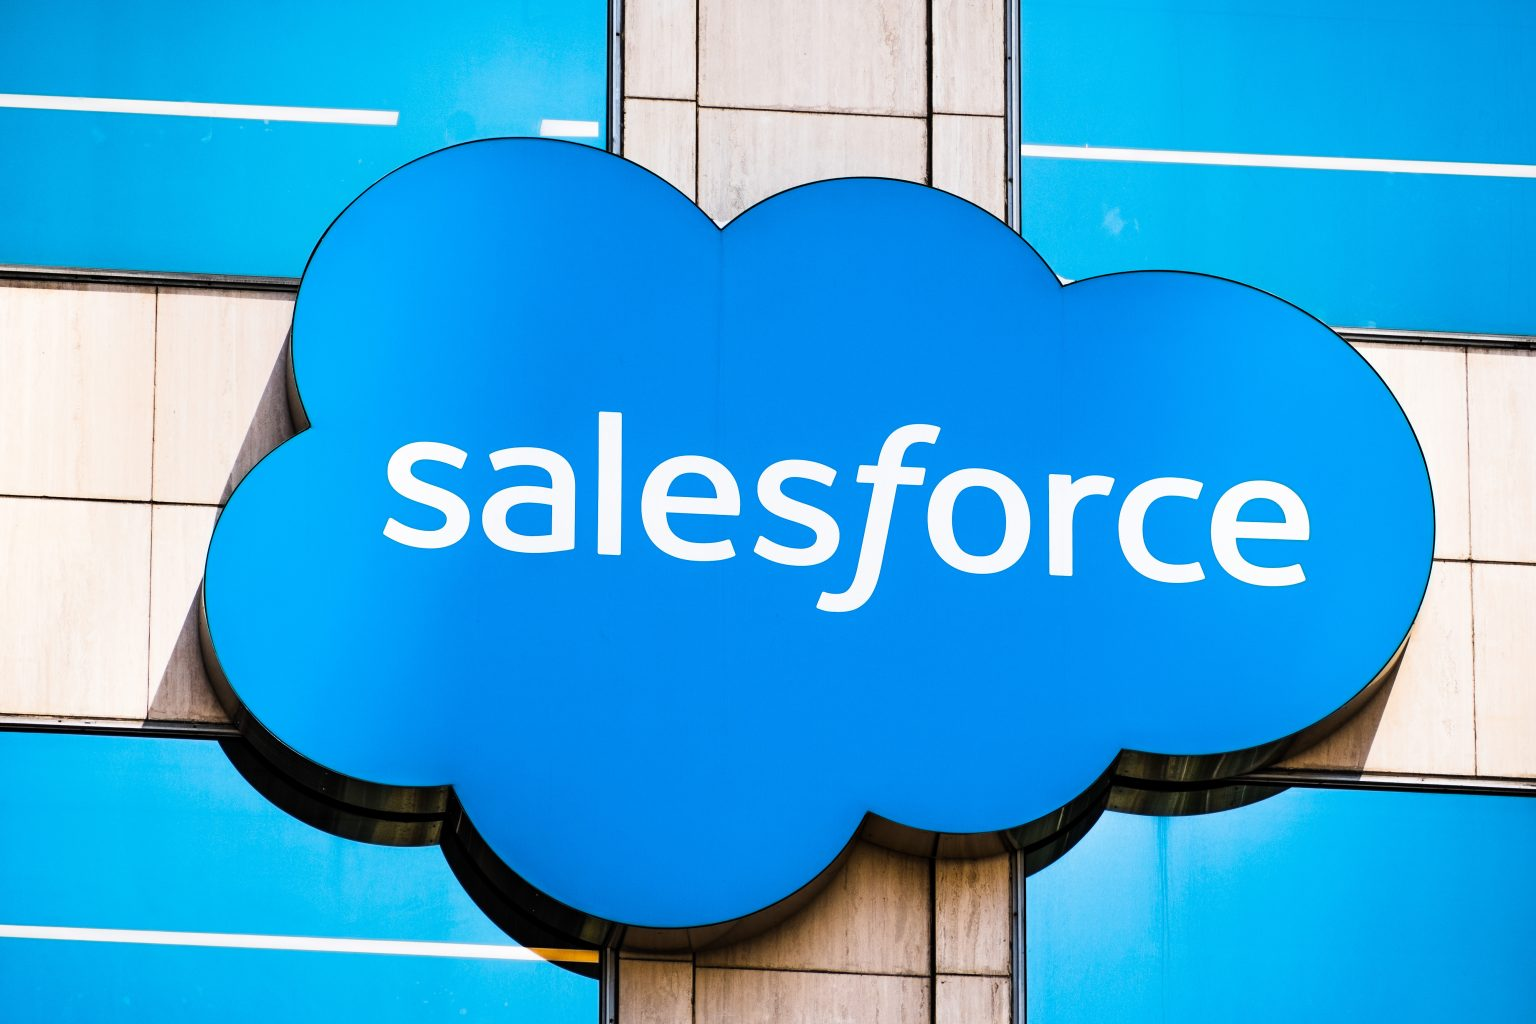 Salesforce logo displayed on the facade of Salesforce tower building in San Francisco